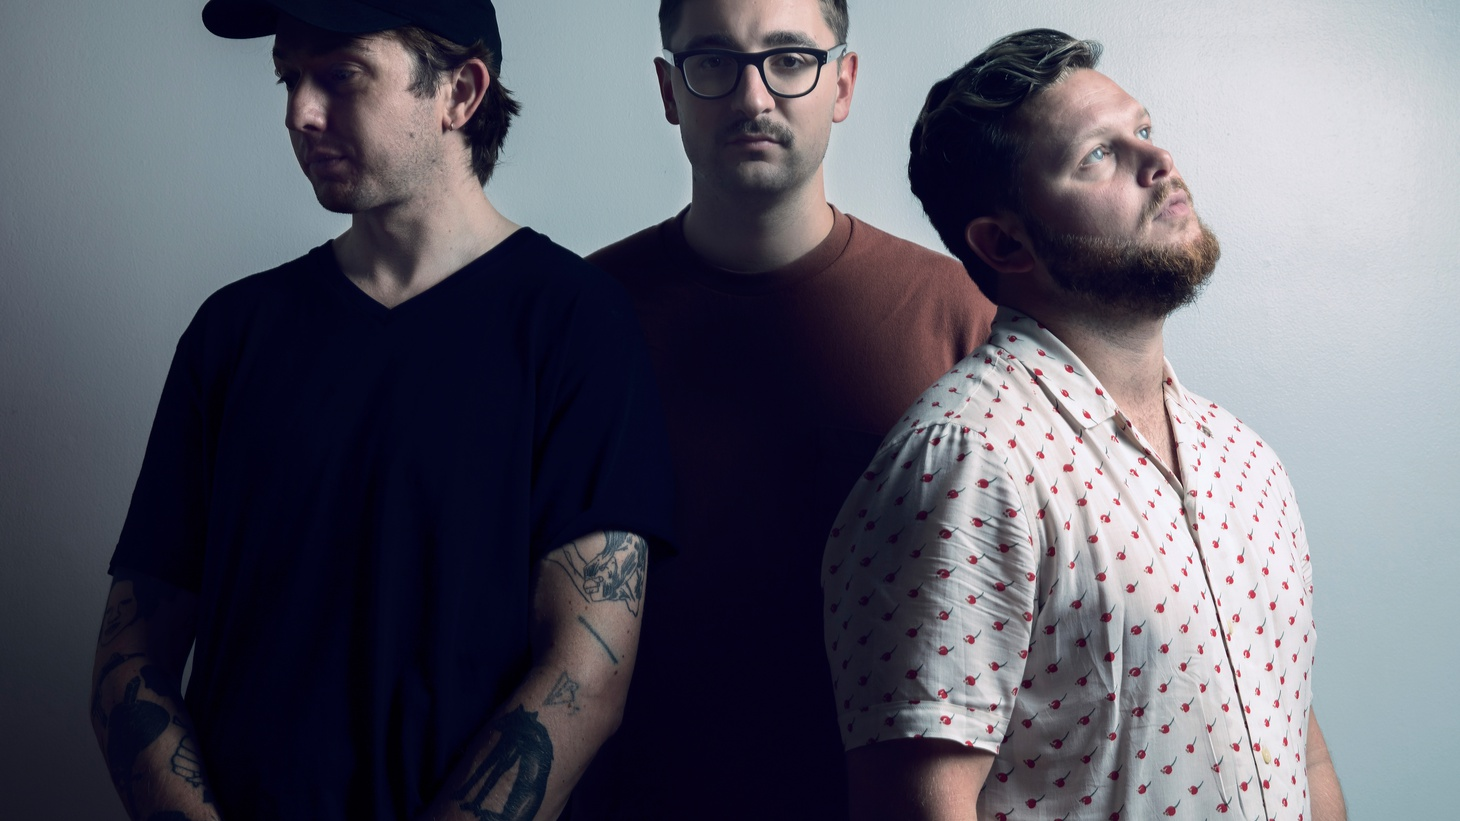 After winning a Mercury Prize, earning a Grammy nomination and selling over a million albums, UK trio alt-J needed a break.